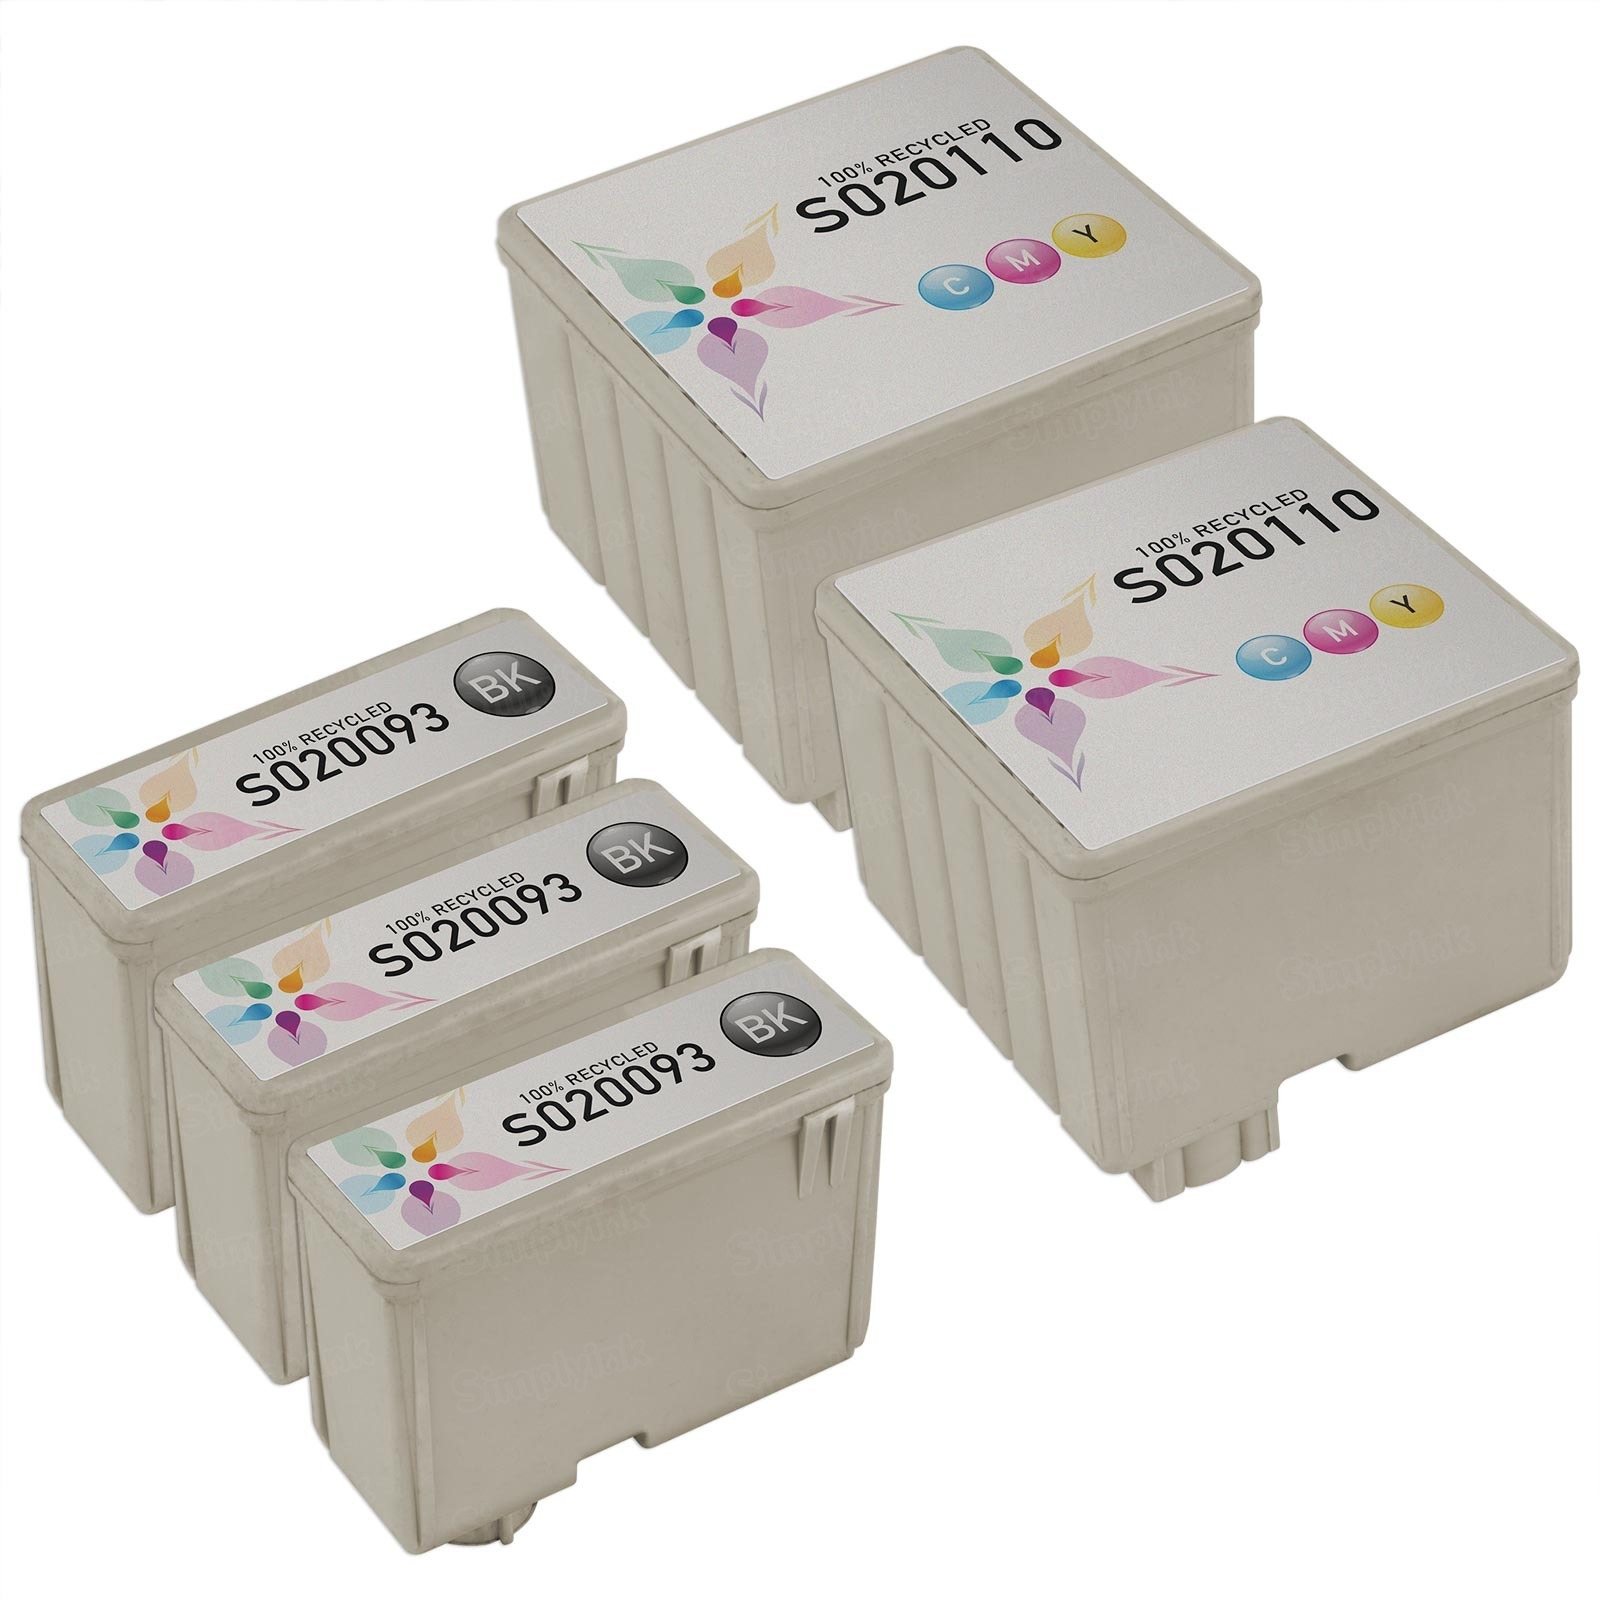 Inkjet Supplies for Epson Printers - Compatible Bulk Set of 5 Ink Cartridges 3 Black Epson S020093 and 2 Color Epson S020110